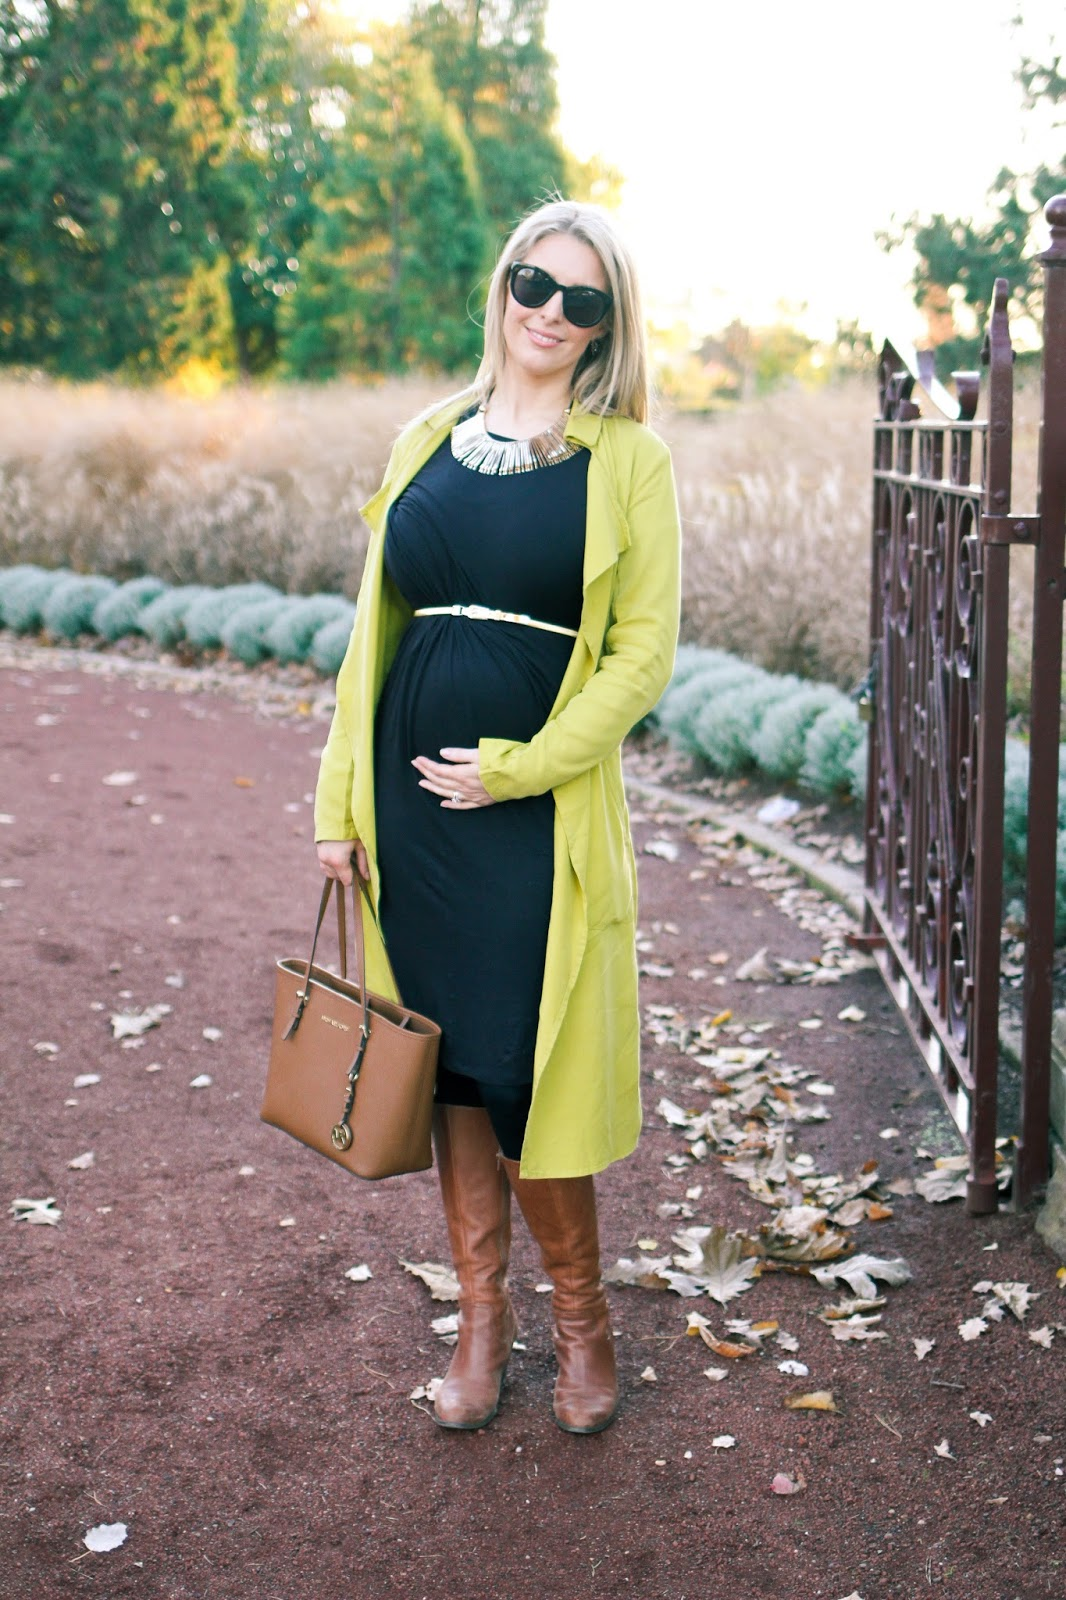 The Goldfields Girl styling maternity fashion. She wears black maternity dress, green jacket, statement gold necklace, brown boots and Michael Kors bag.